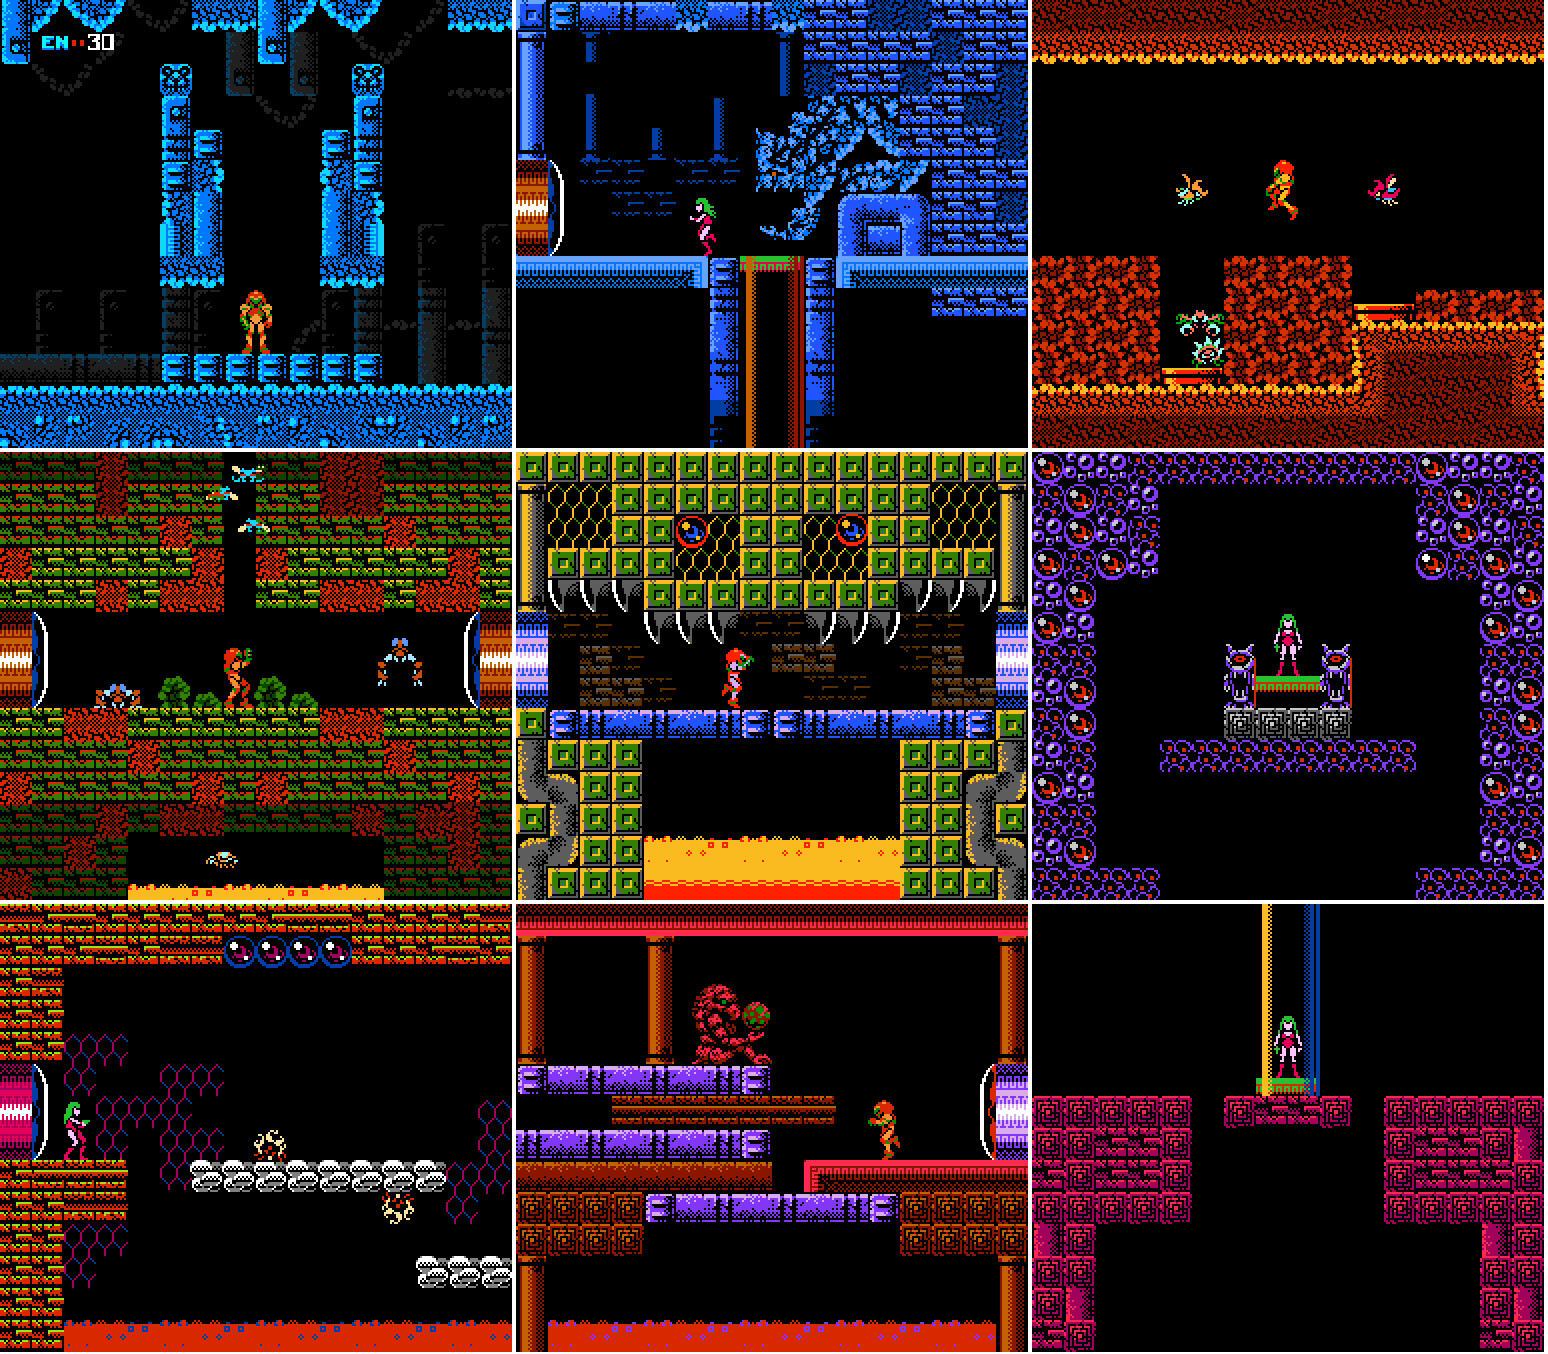 Mosaic of rooms made with my tiles and sprites for the project